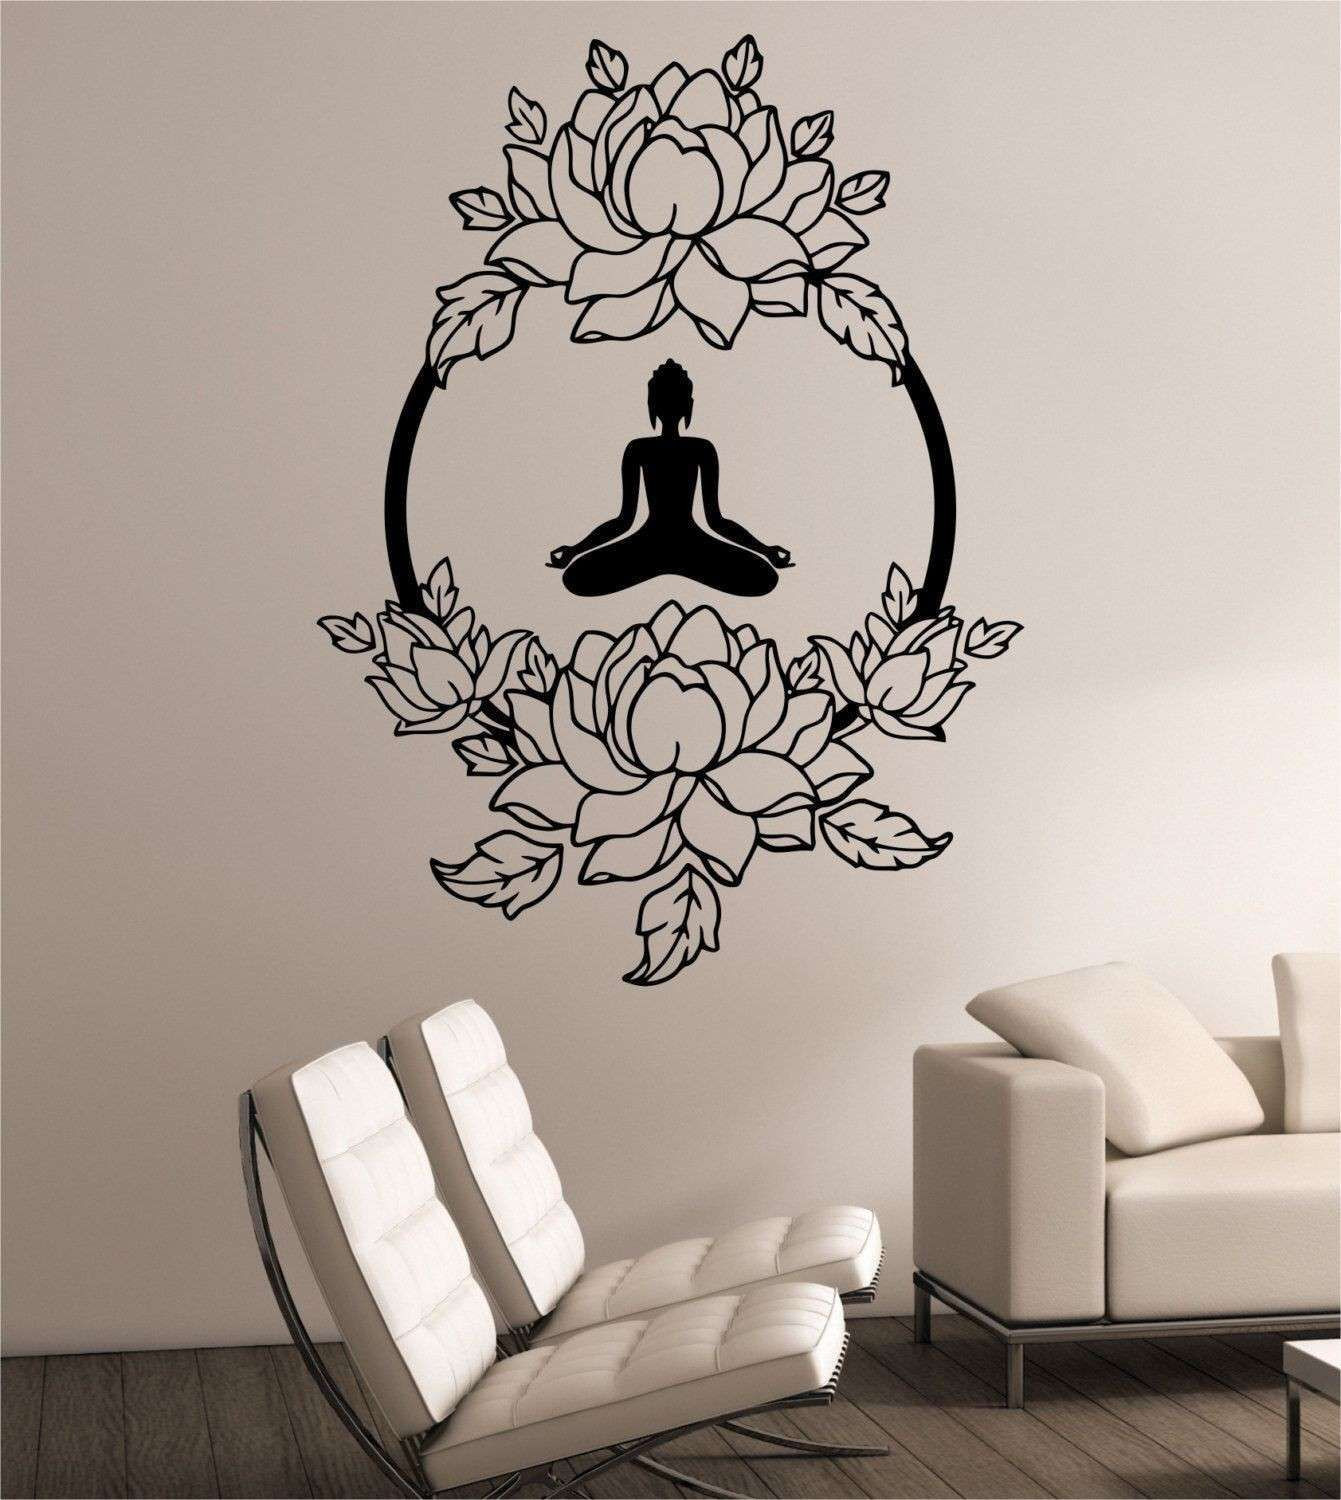 Diy Vase Decor Of Cute Designs Awesome Diy Home Decor Vaseh Vases Decorative Flower Intended for Cute Designs Inspirational Wall Hanging Ideas for Bedrooms Fresh Wall Decal Luxury 1 Kirkland Of Cute